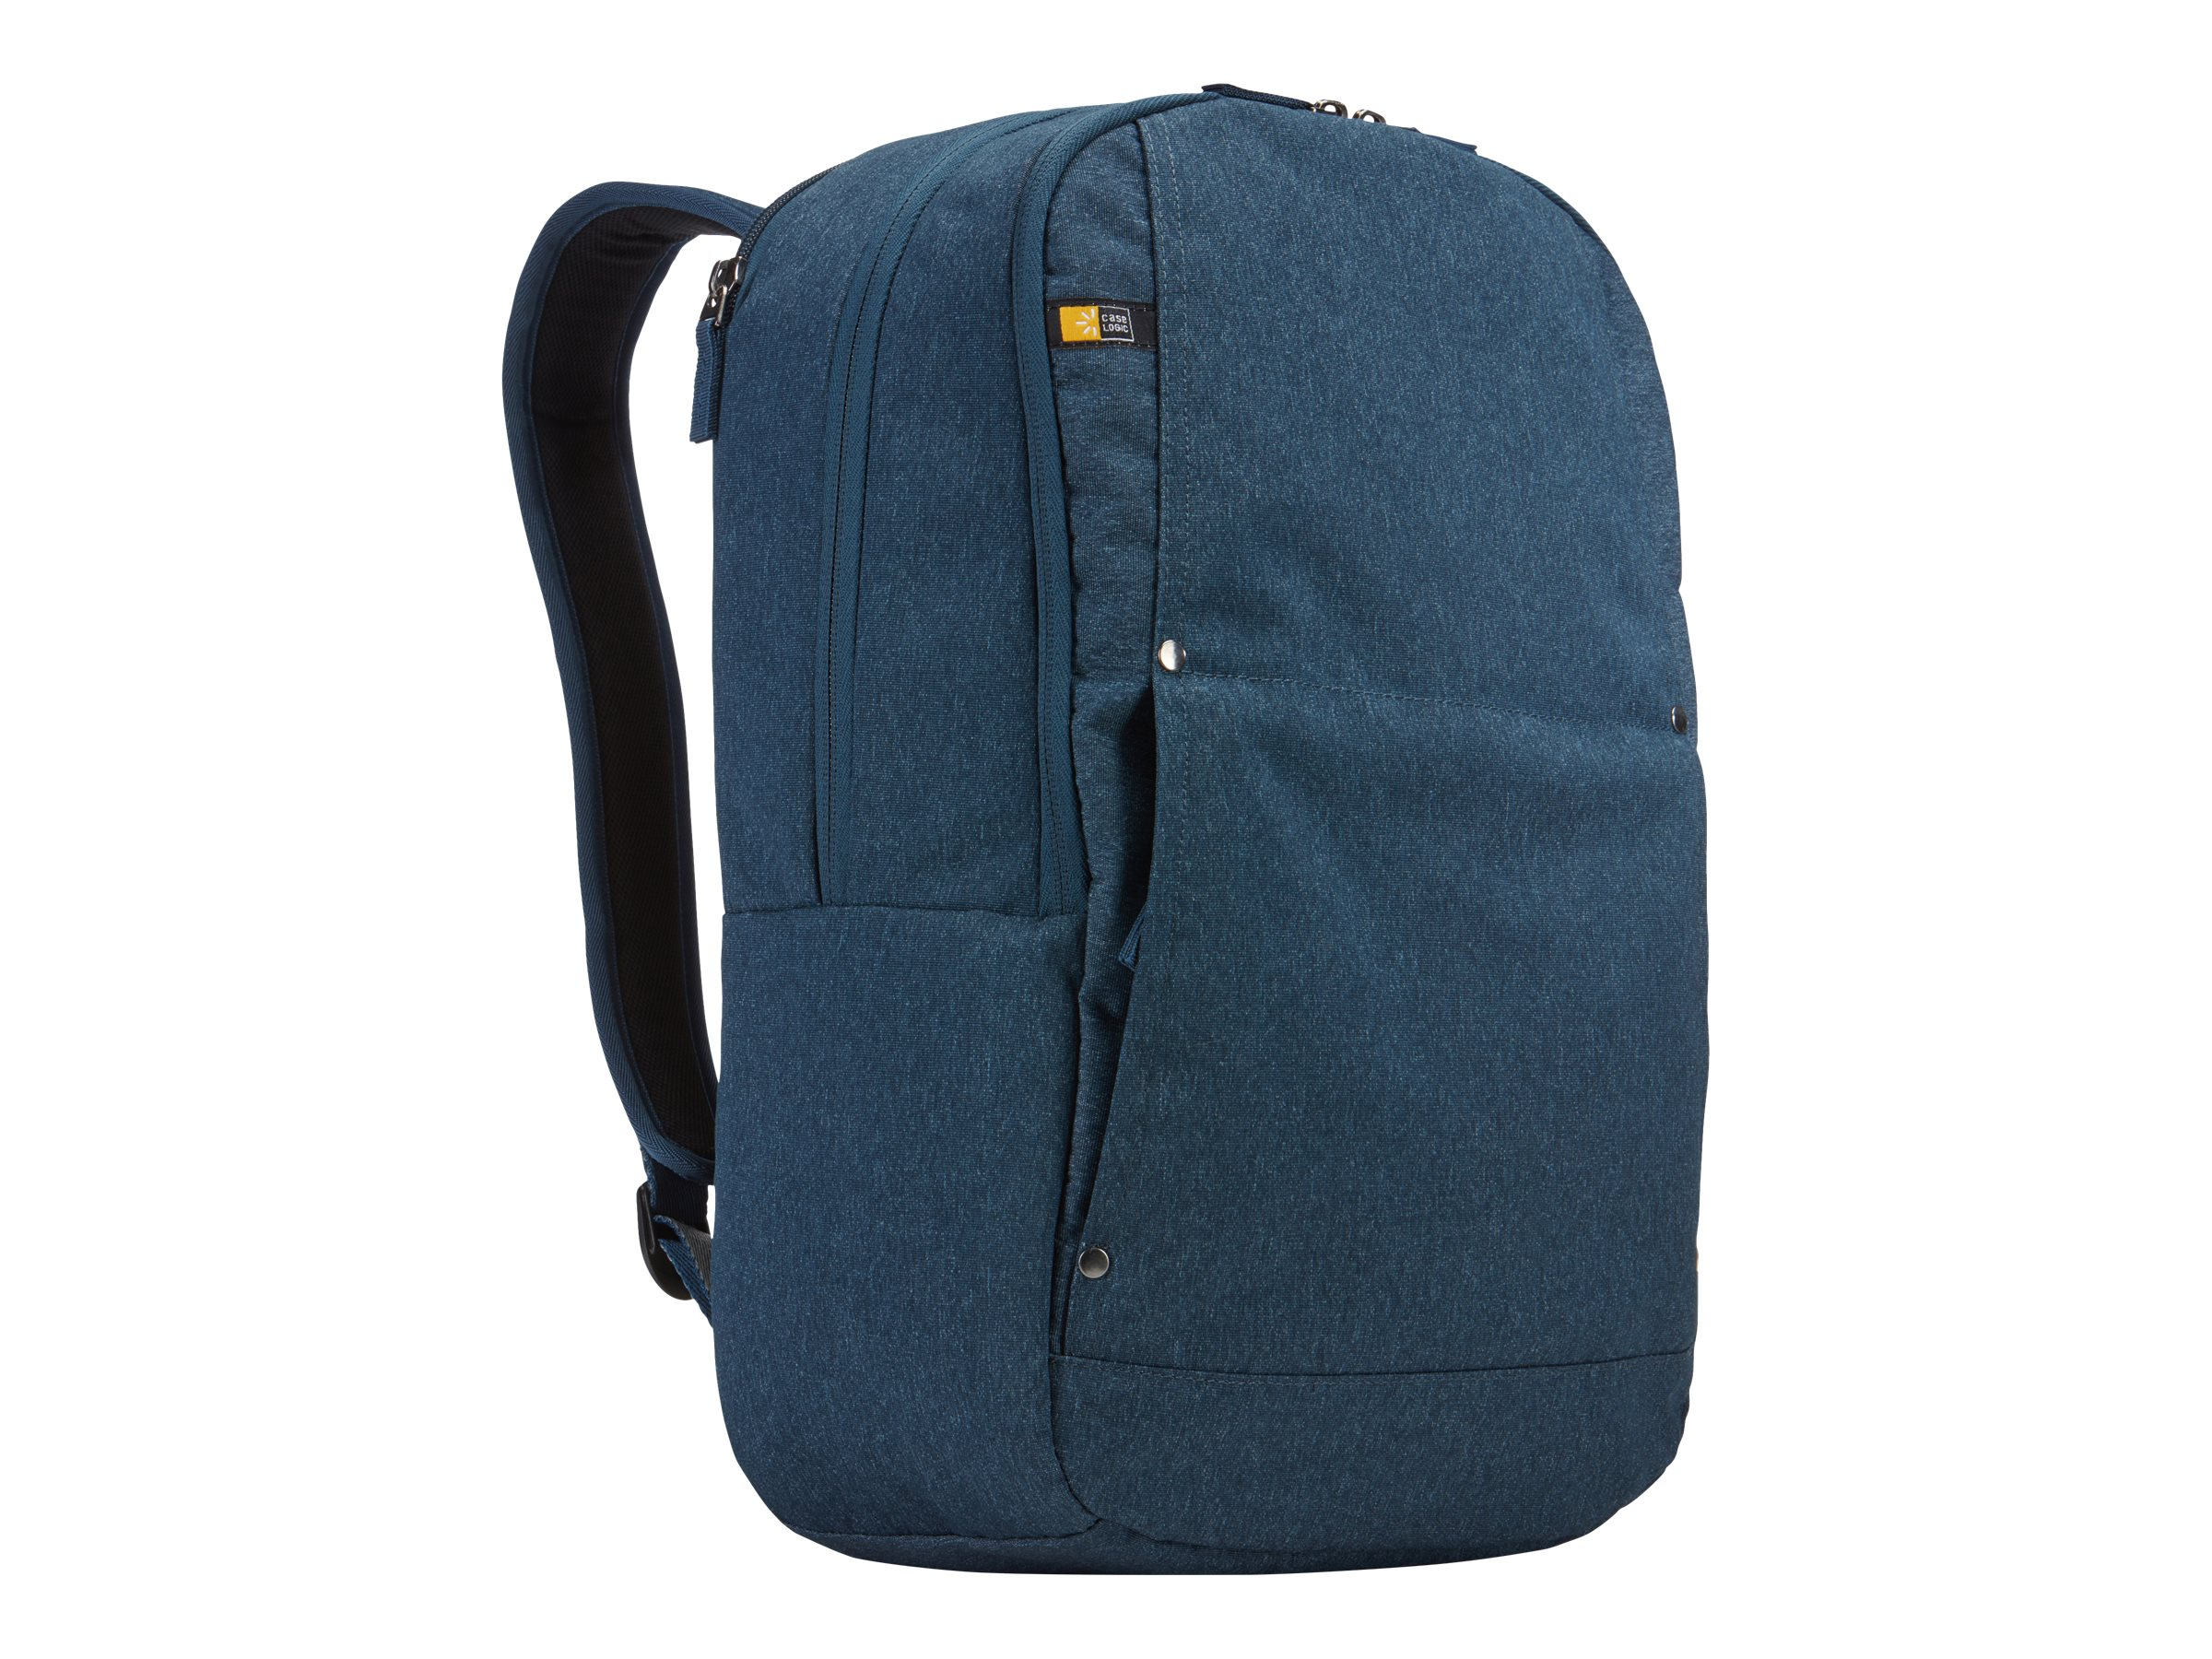 Case Logic Huxton Daypack for 15.6 Laptop, Midnight Navy, HUXDP115BLUE